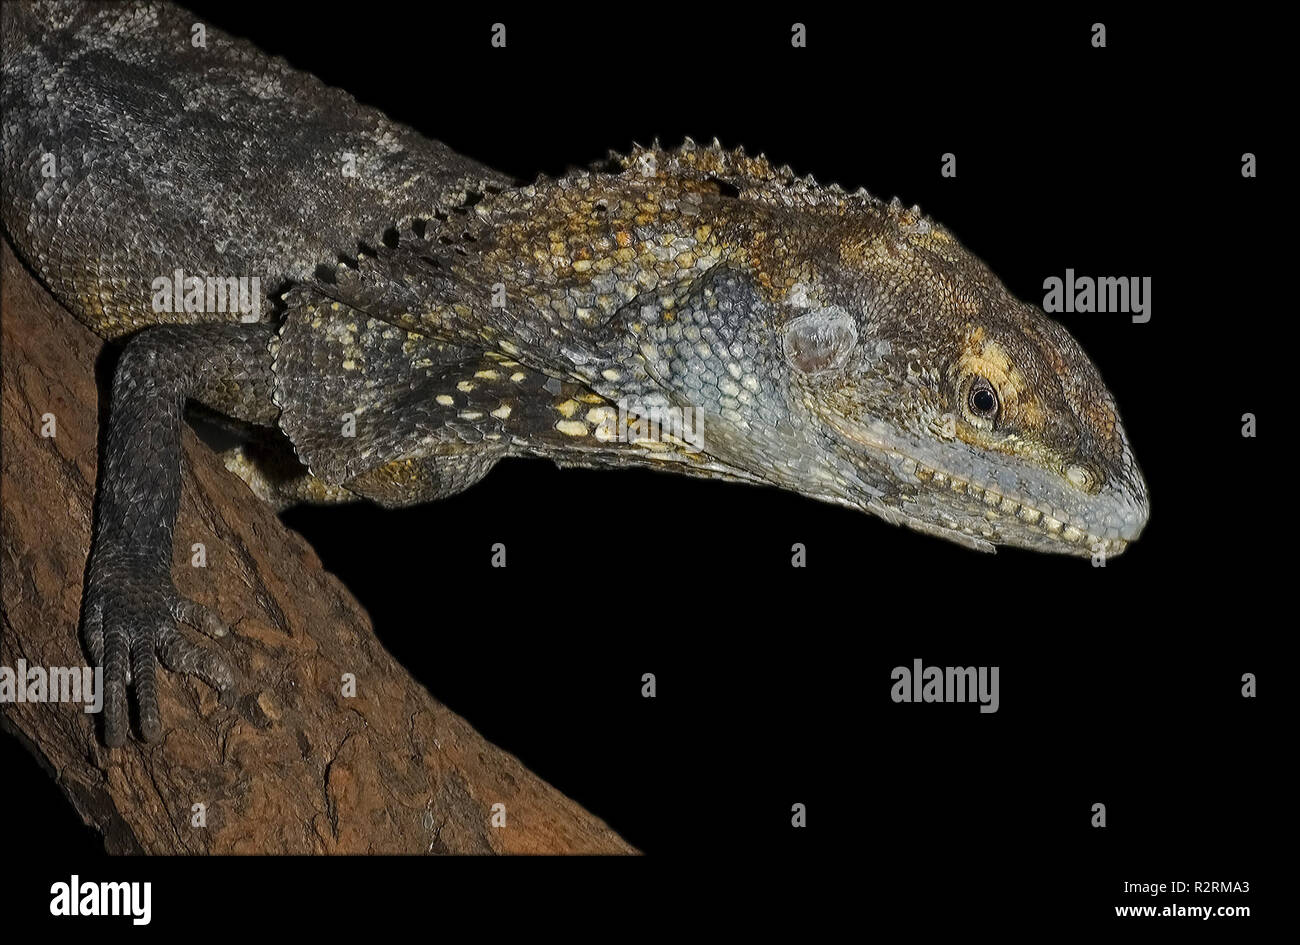 frilled lizard - Stock Image